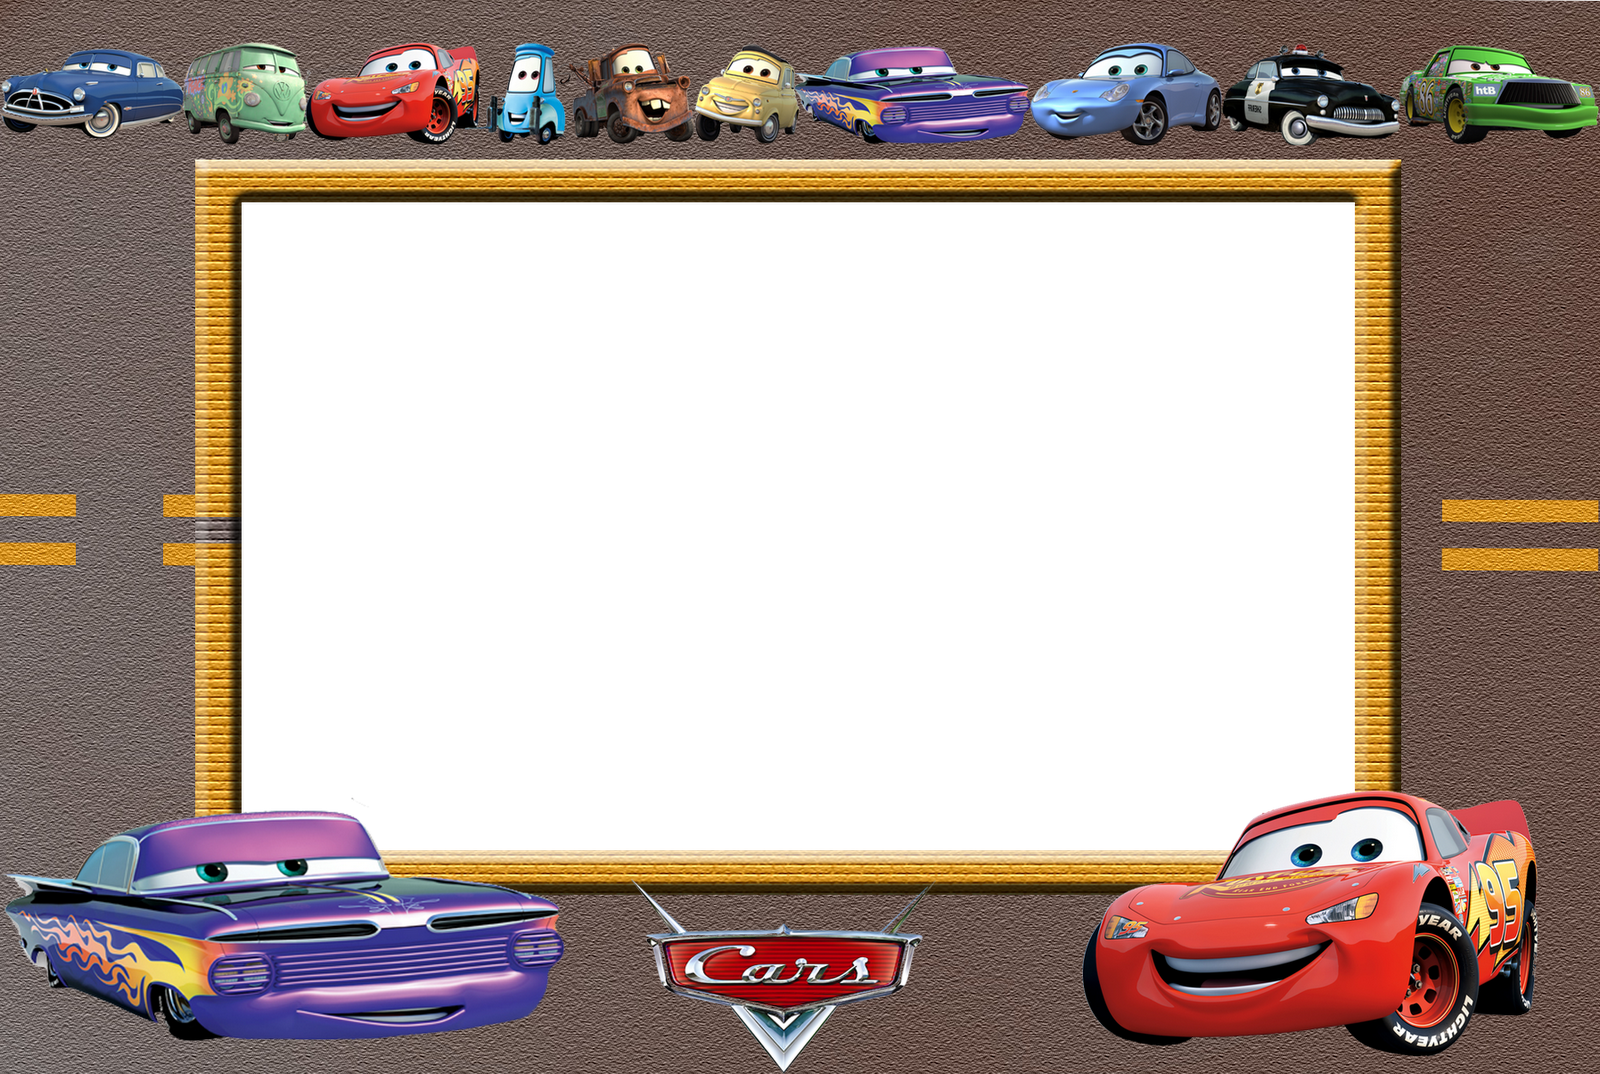 Carros Disney Route 66 #carrosdisney | Carros Disney ou Route 66 ...